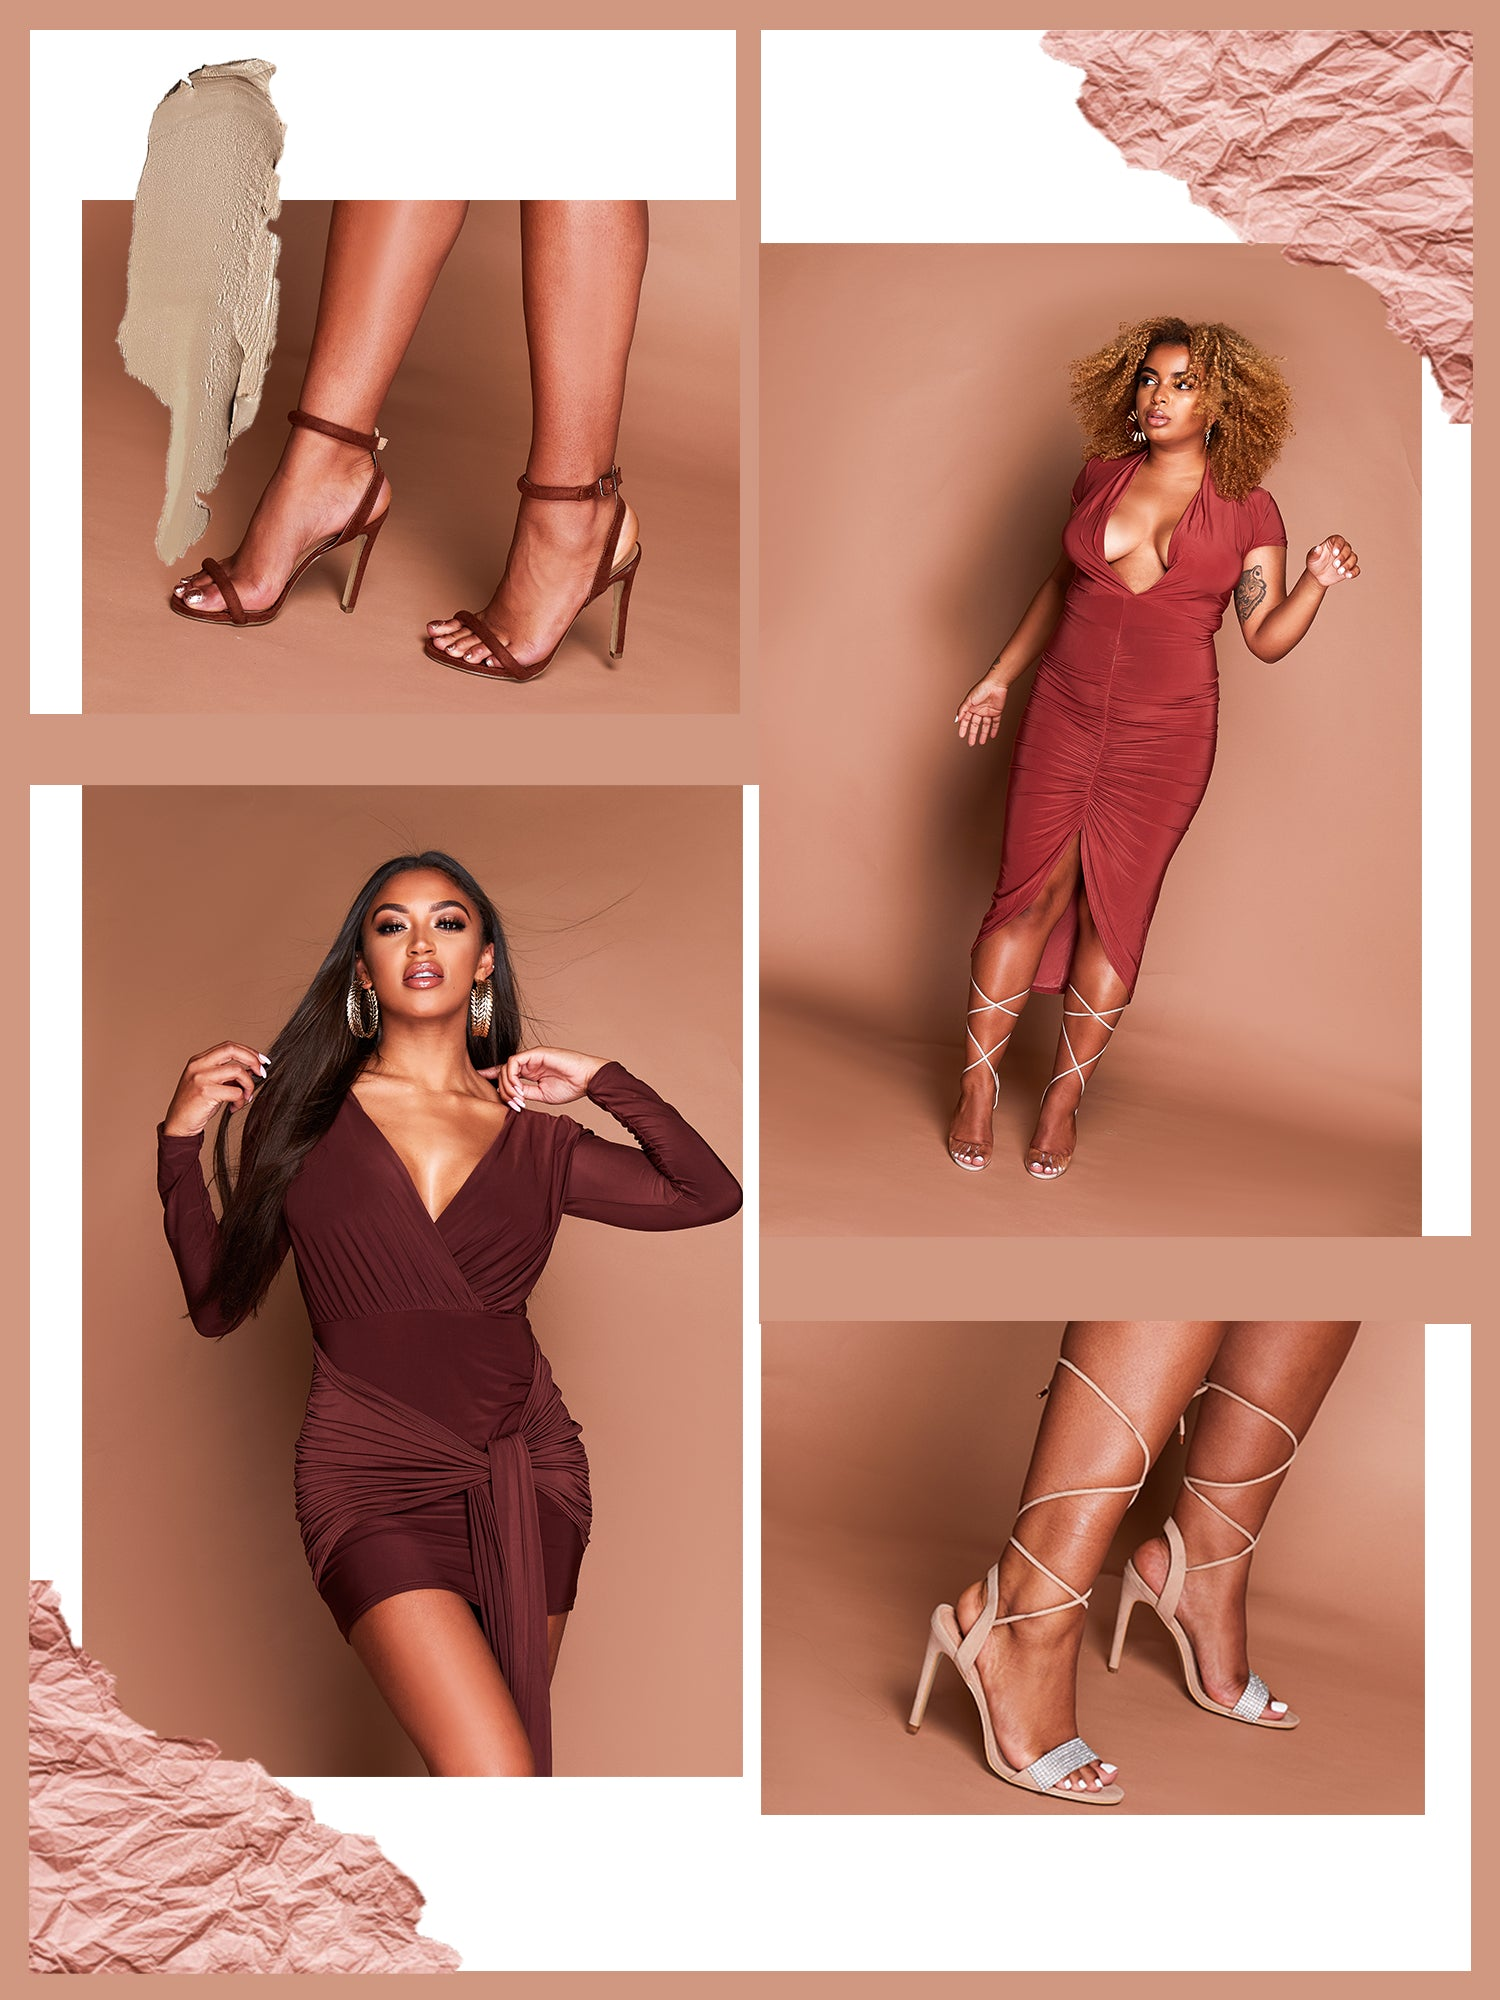 Rust mega plunge slinky bodycon dress featuring ruched detailing down the front. Chocolate coloured plunge dress featuring in a fitted slinky style material.